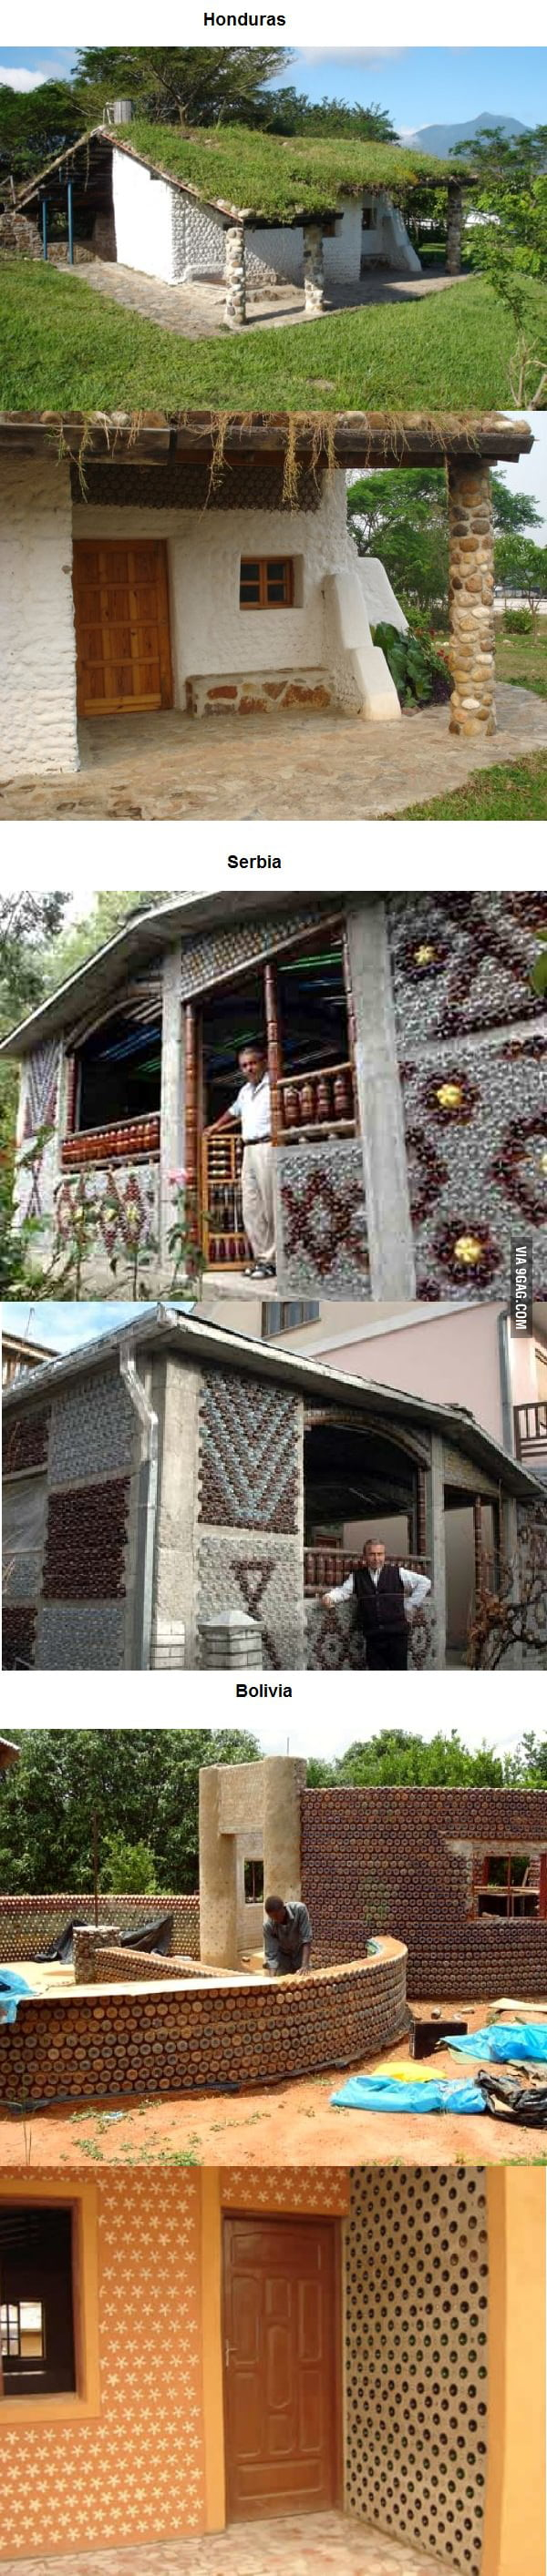 Amazing houses made of plastics bottles